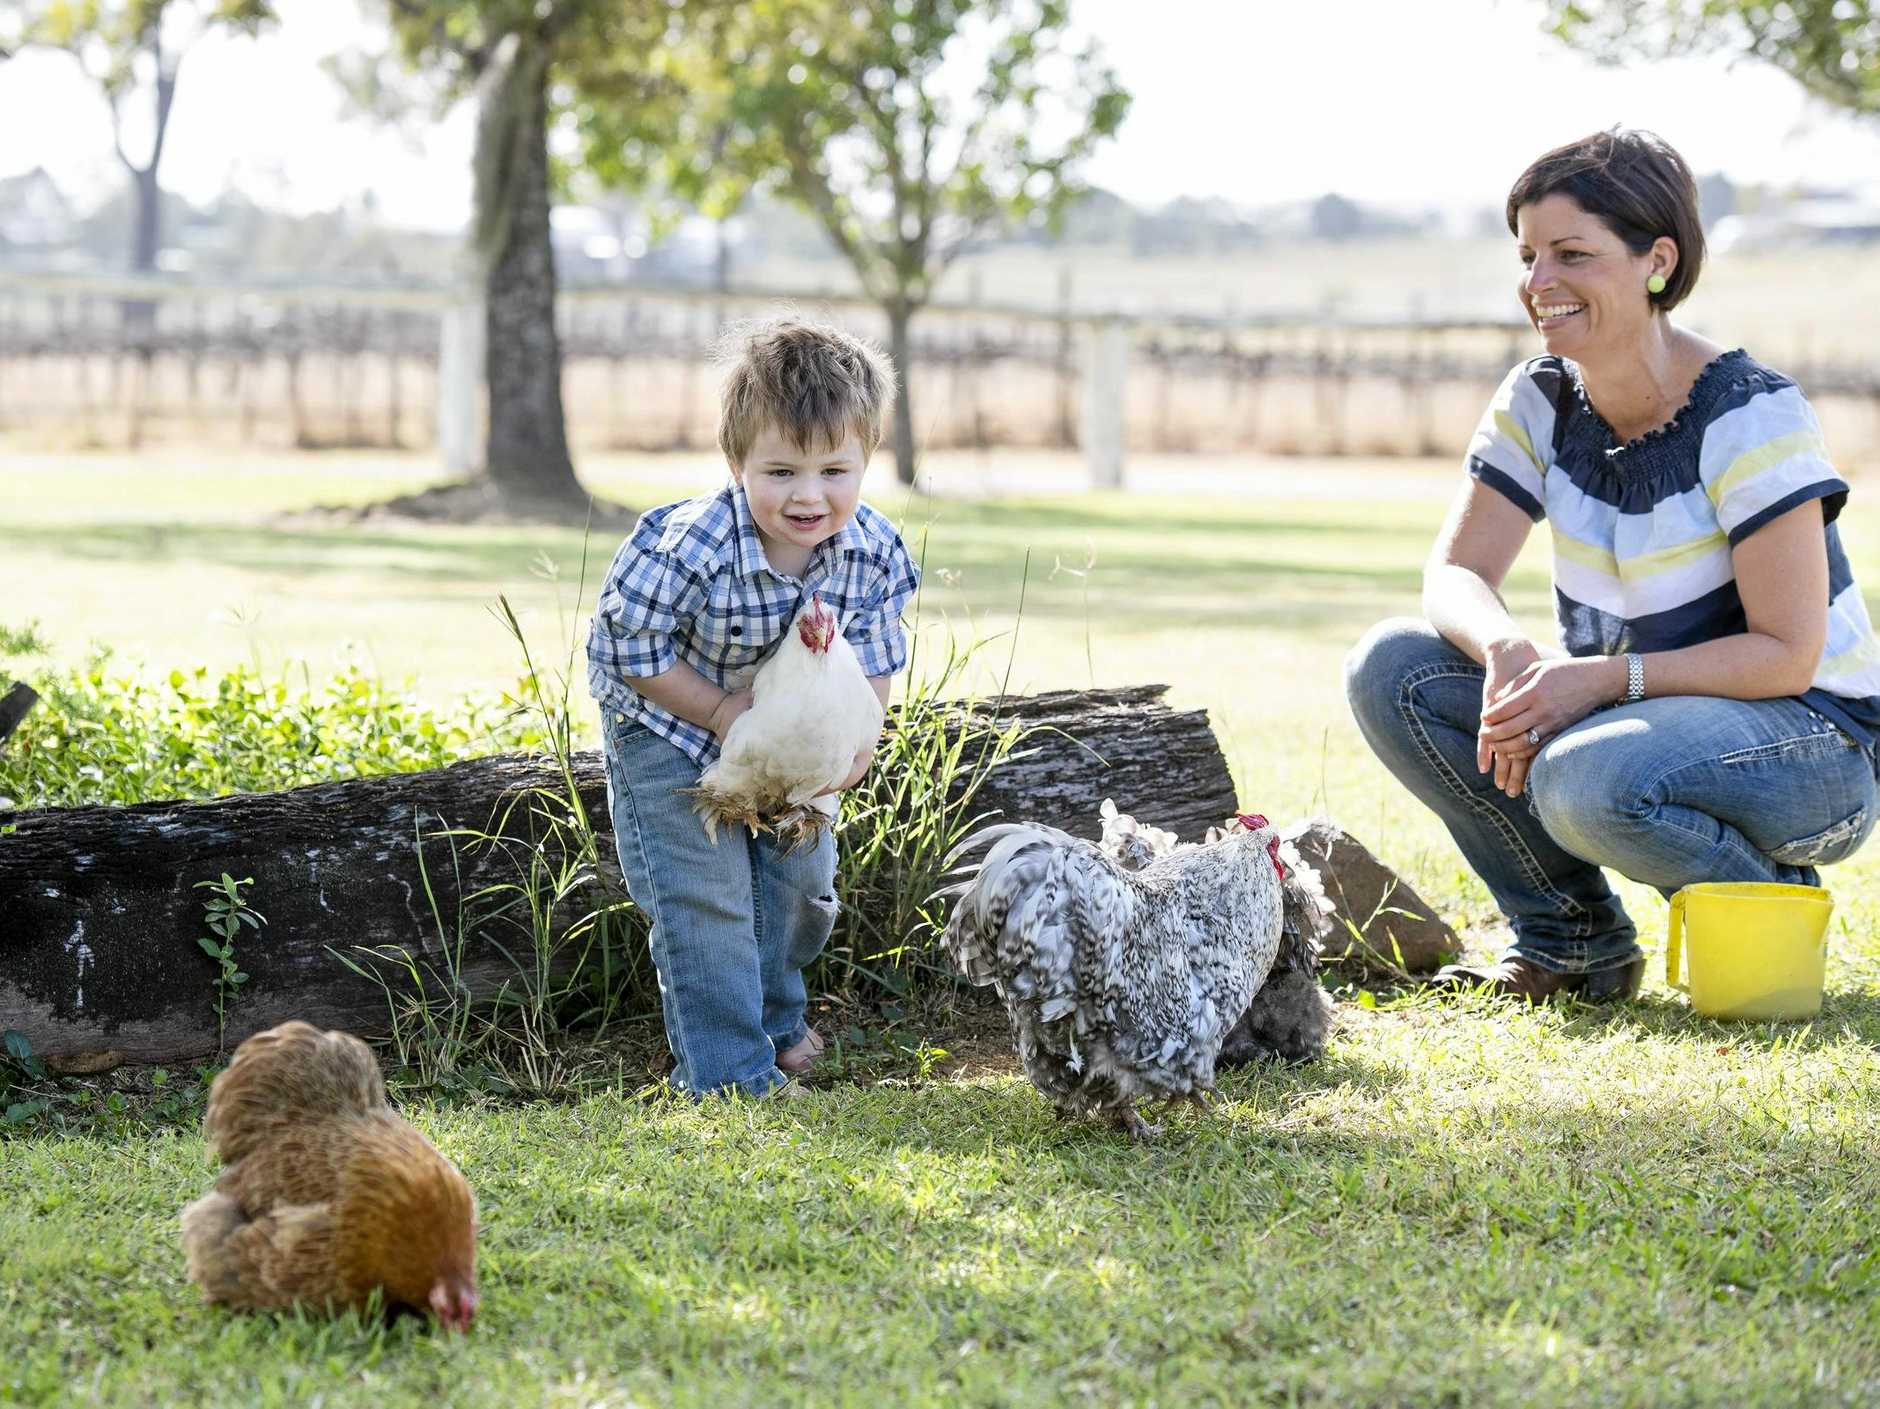 FRESH START: Tina Kenyon and her son play at the Hidden Gold Homestead in Moffatdale.